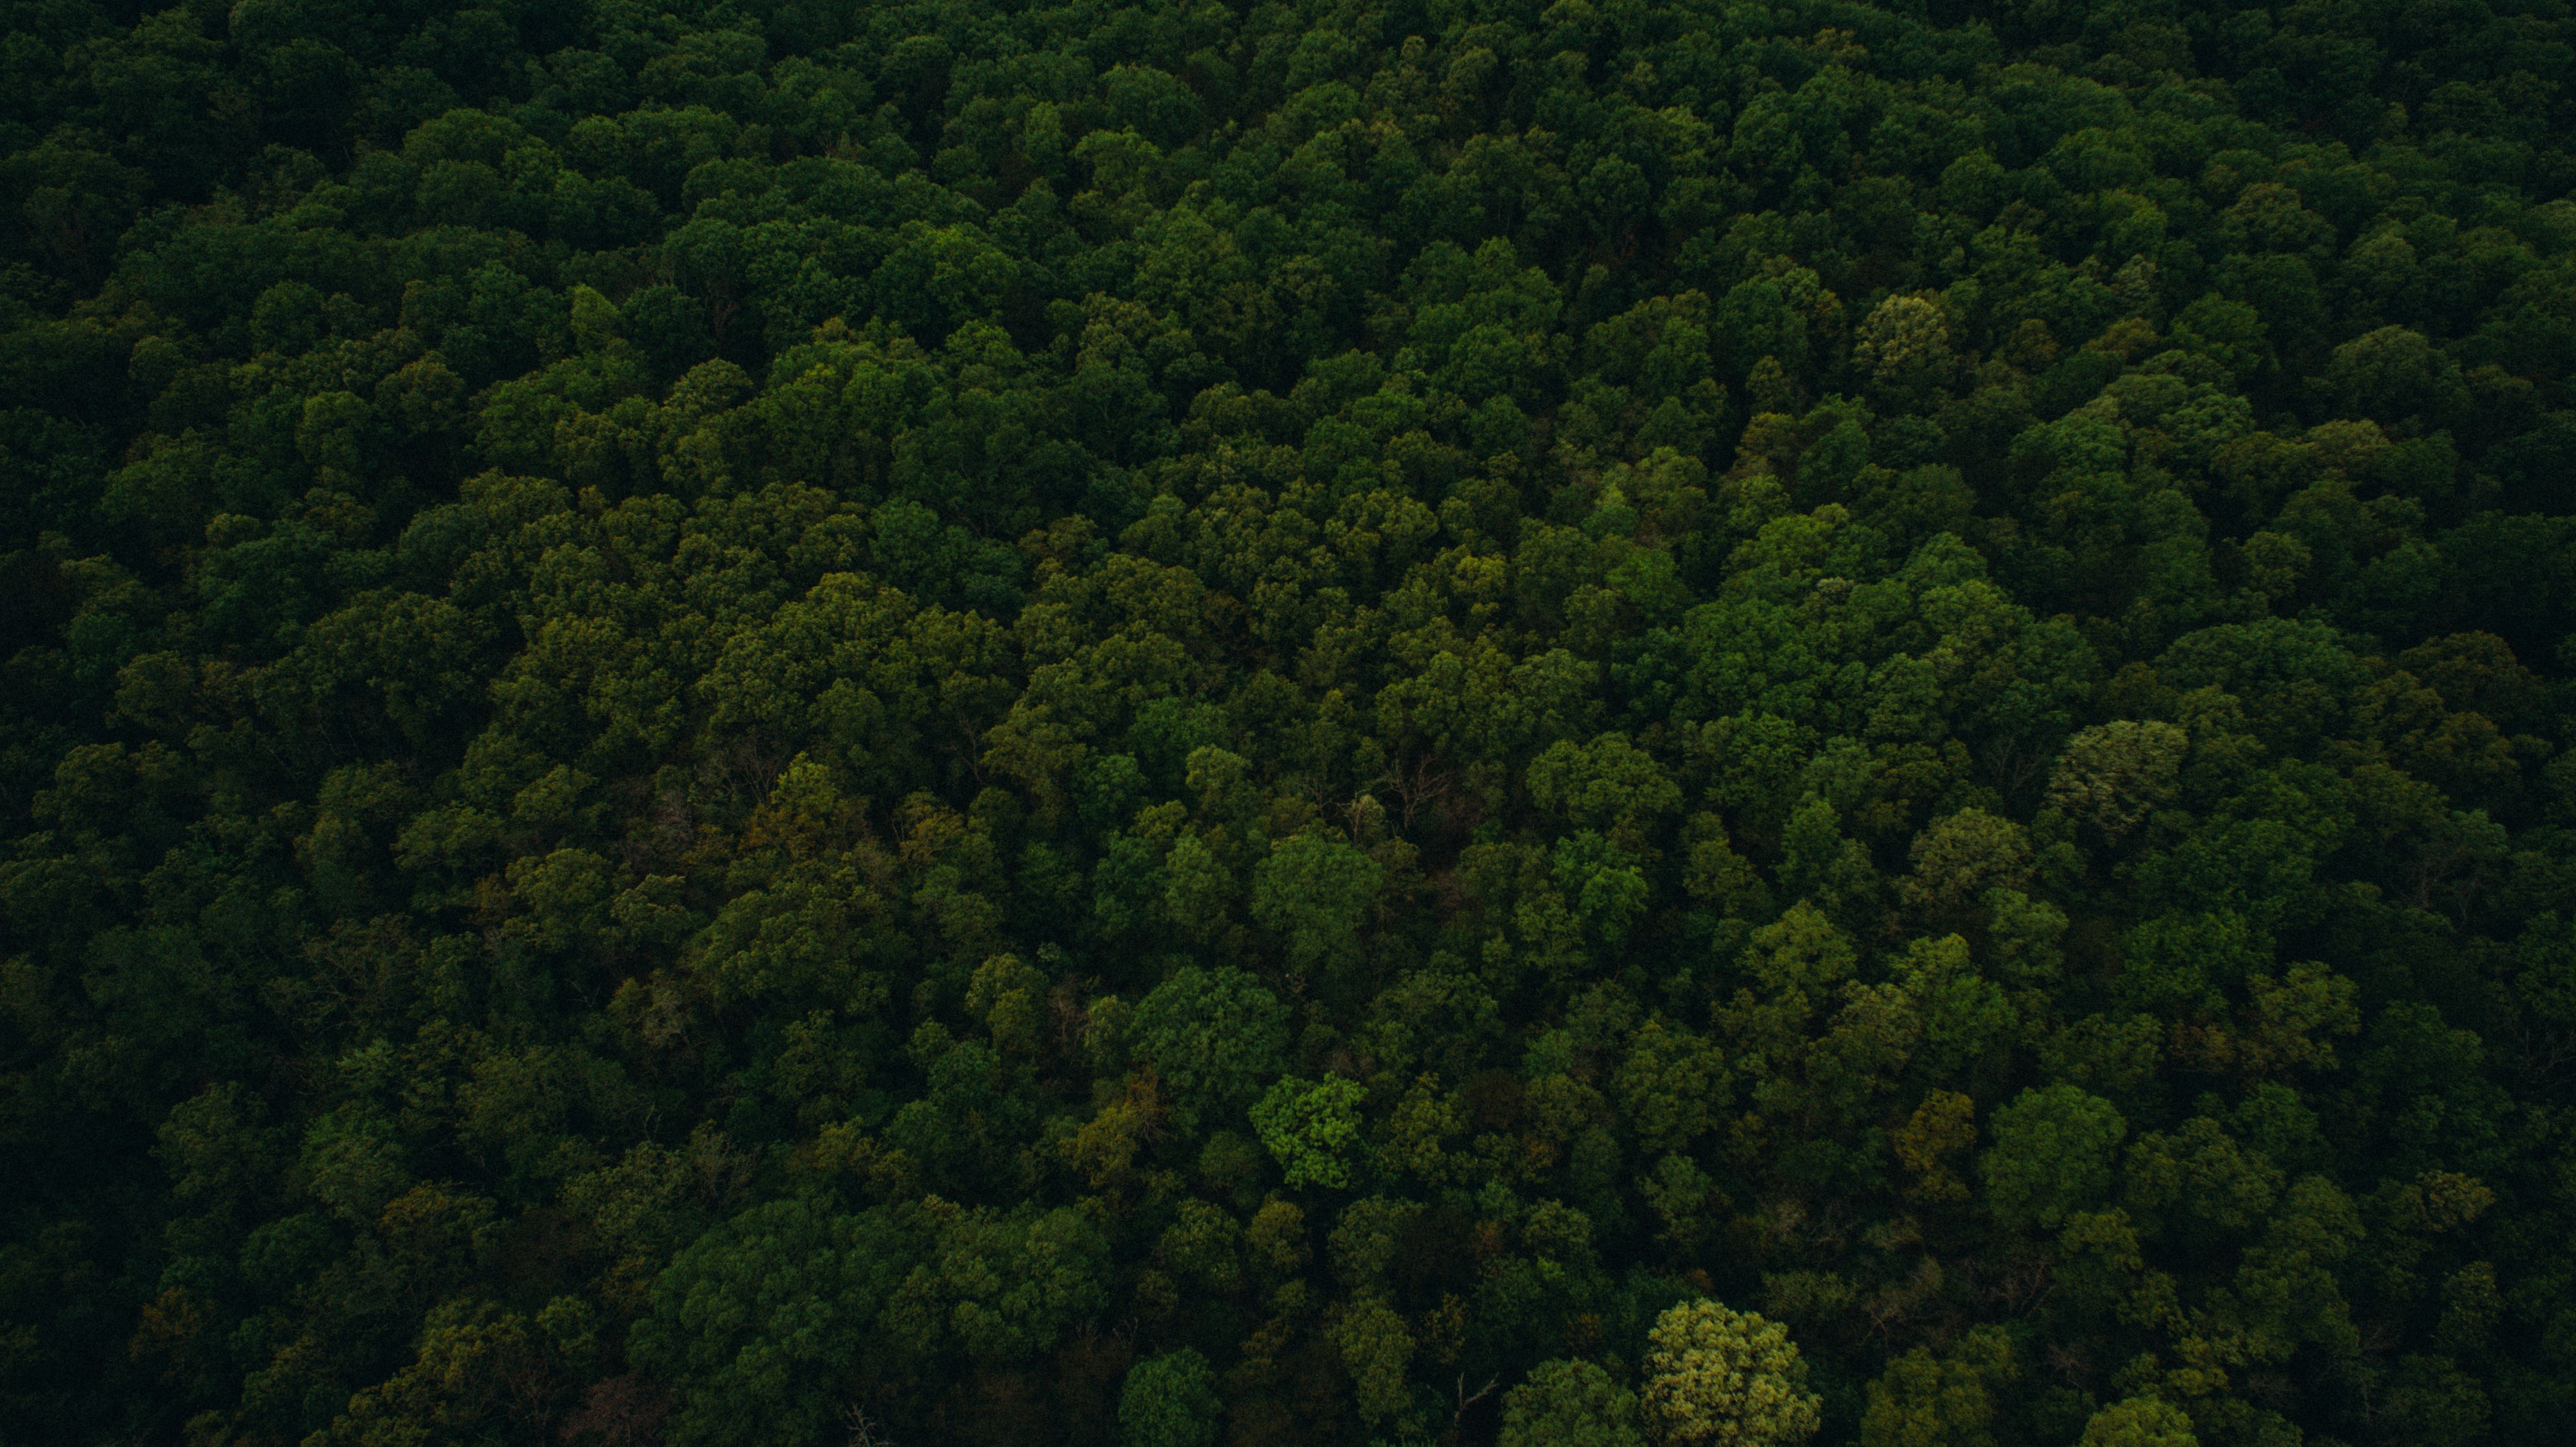 A drone shot of a green forest in Harrison